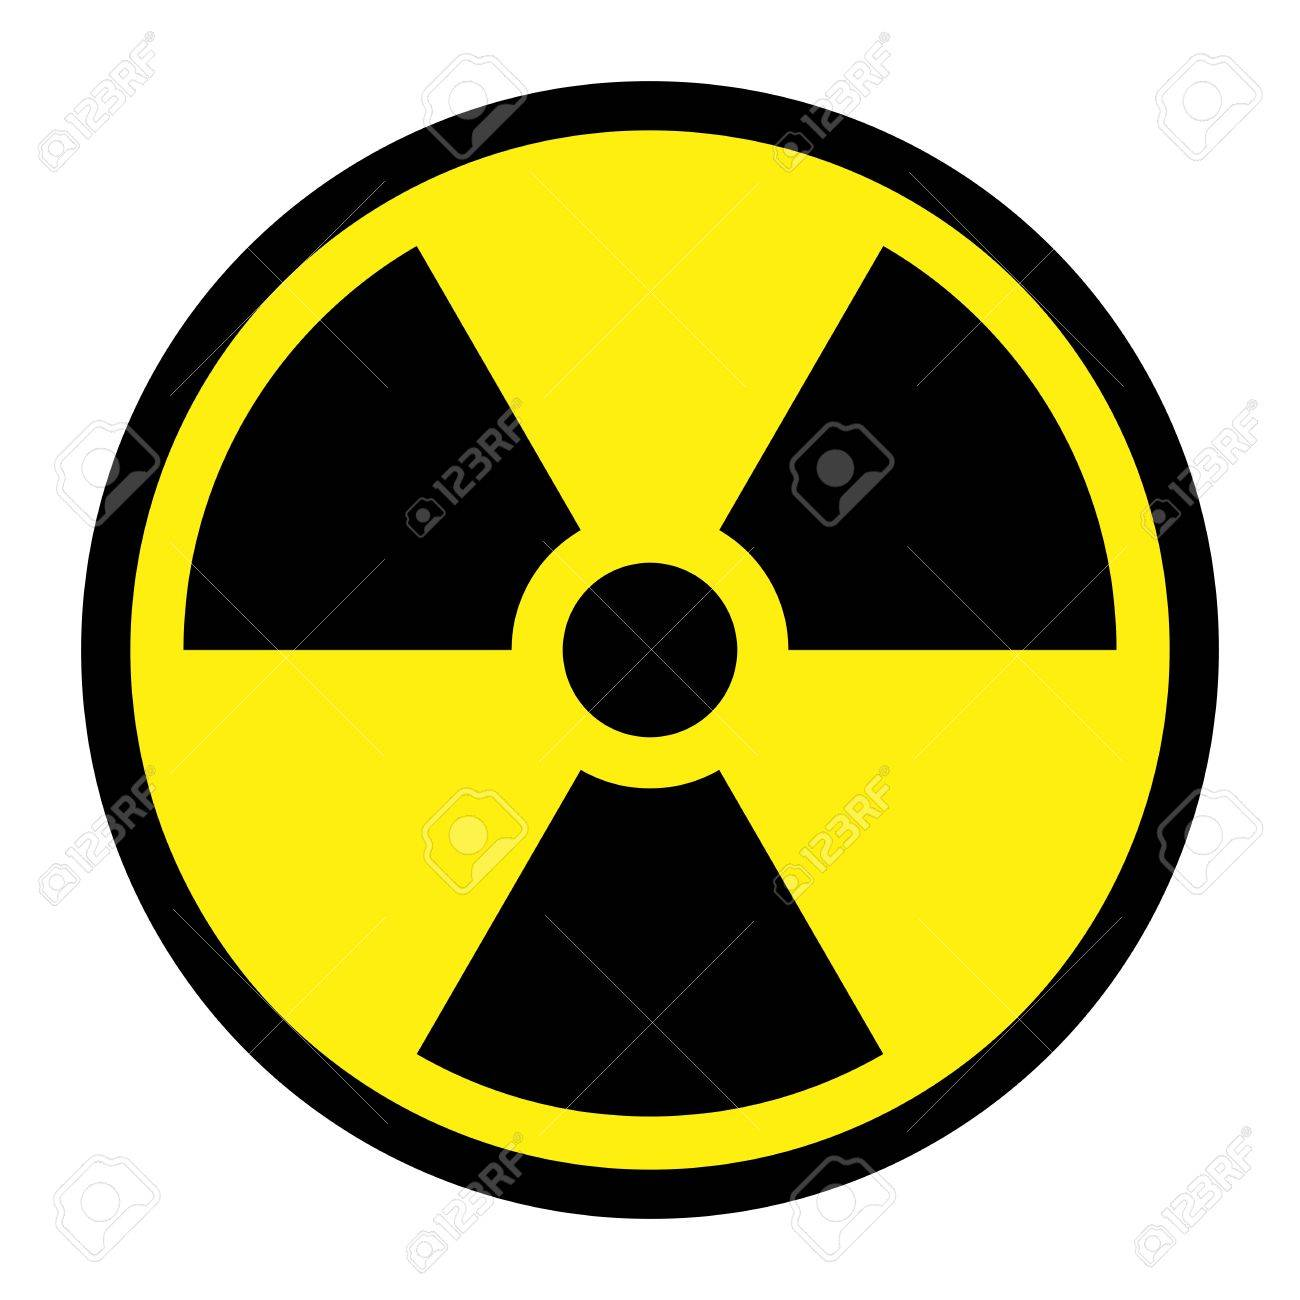 Radiation Round Sign Stock Vector - 4380537